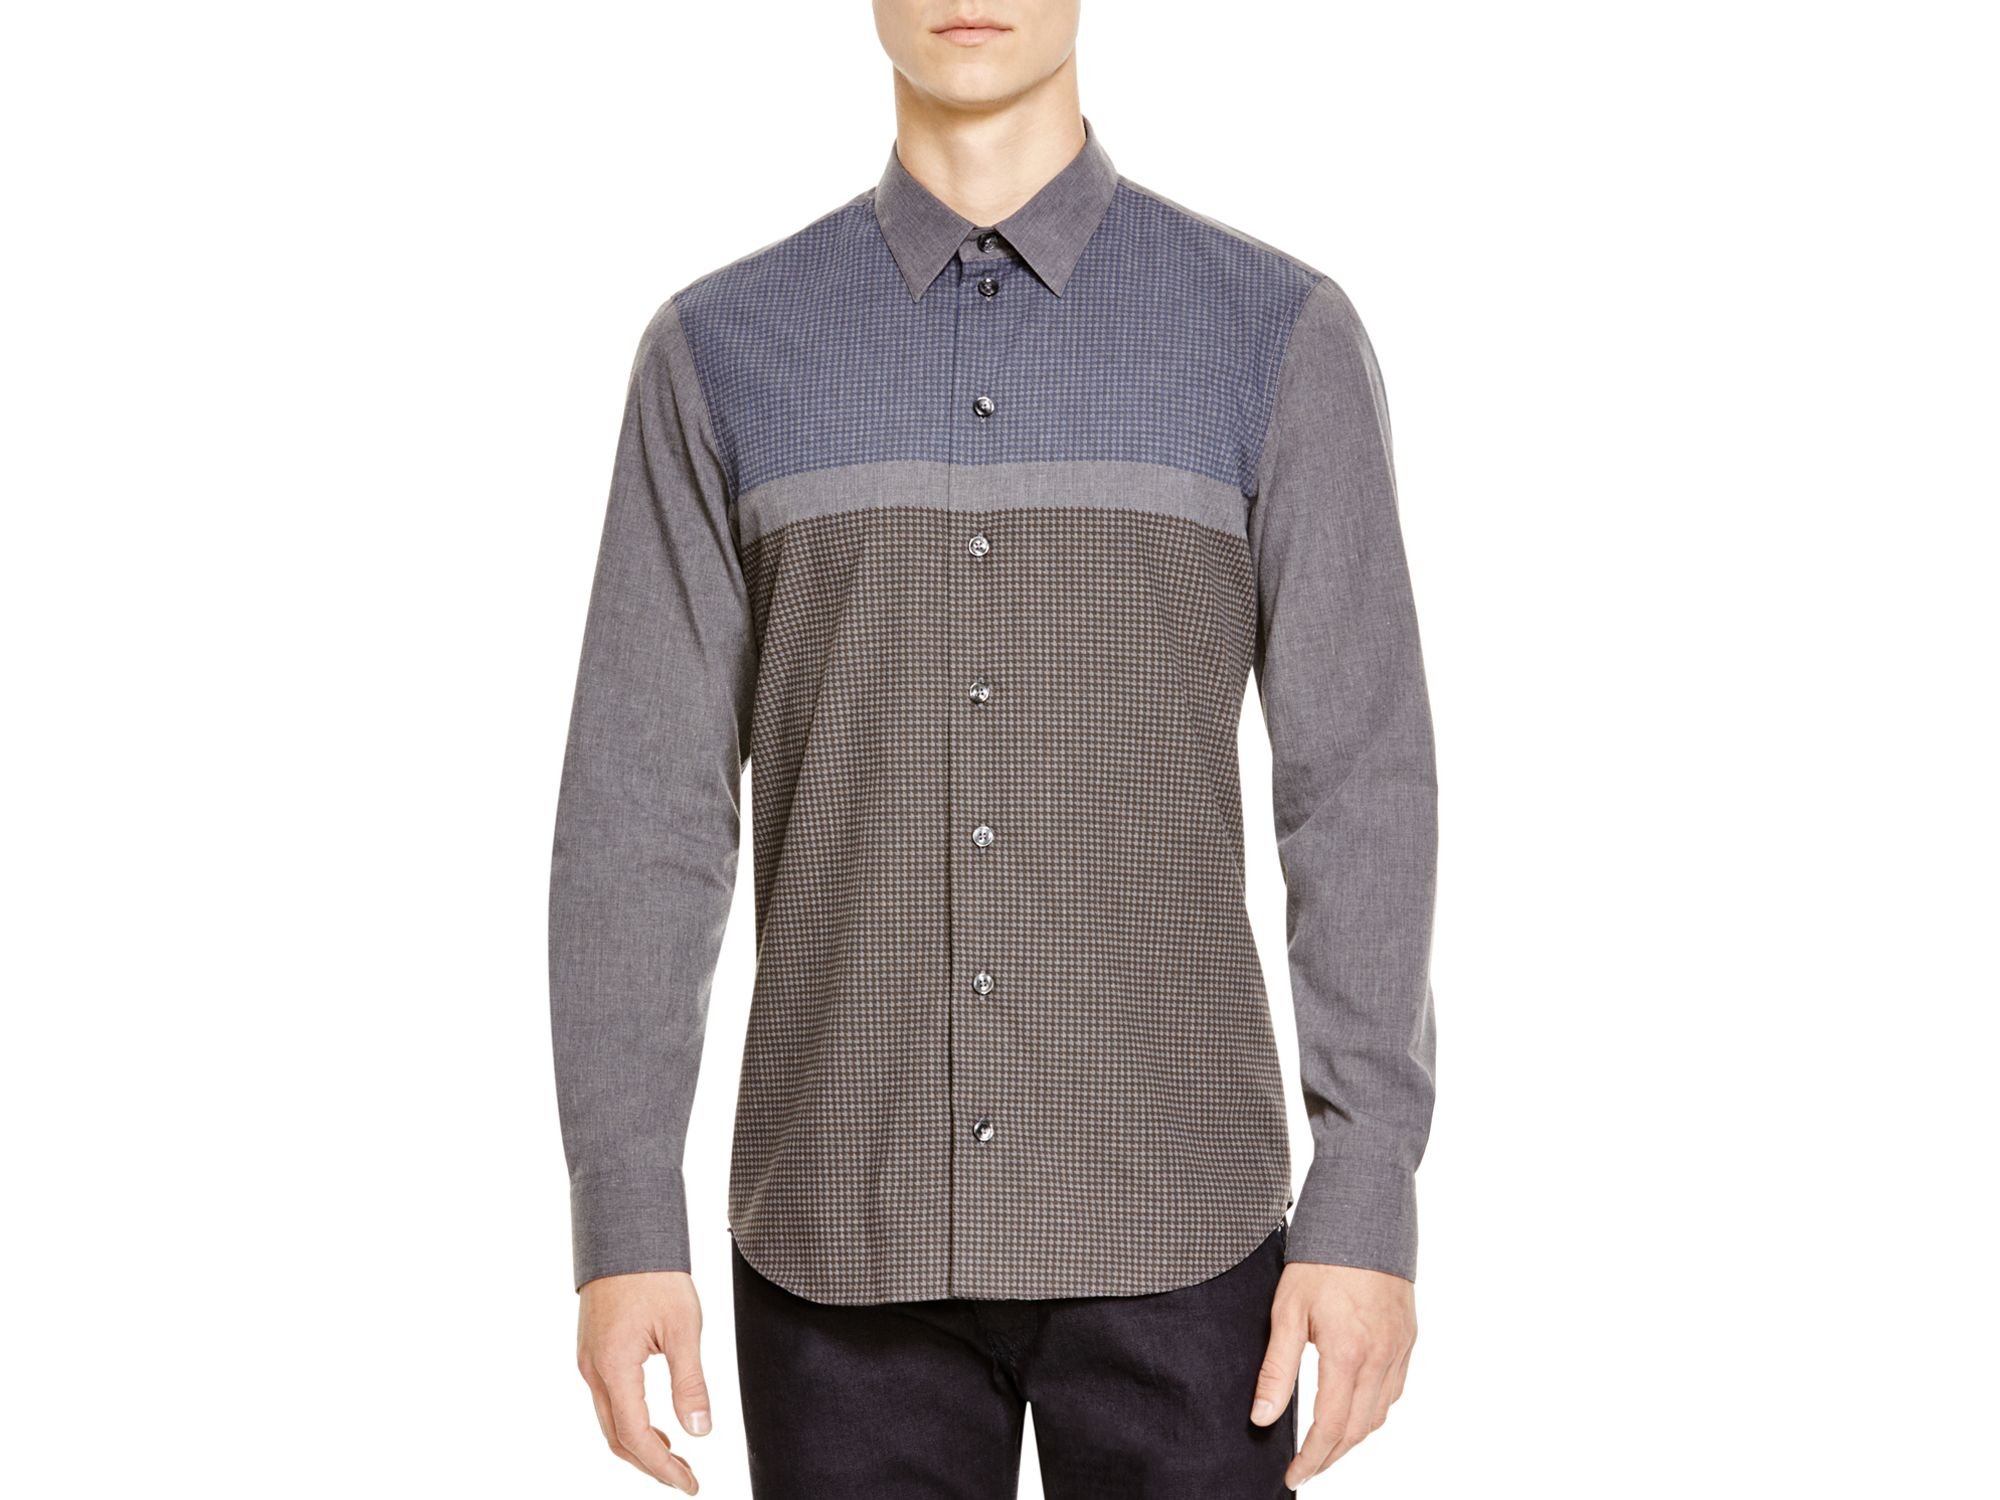 Armani Multicolor Printed Classic Fit Button Down Shirt